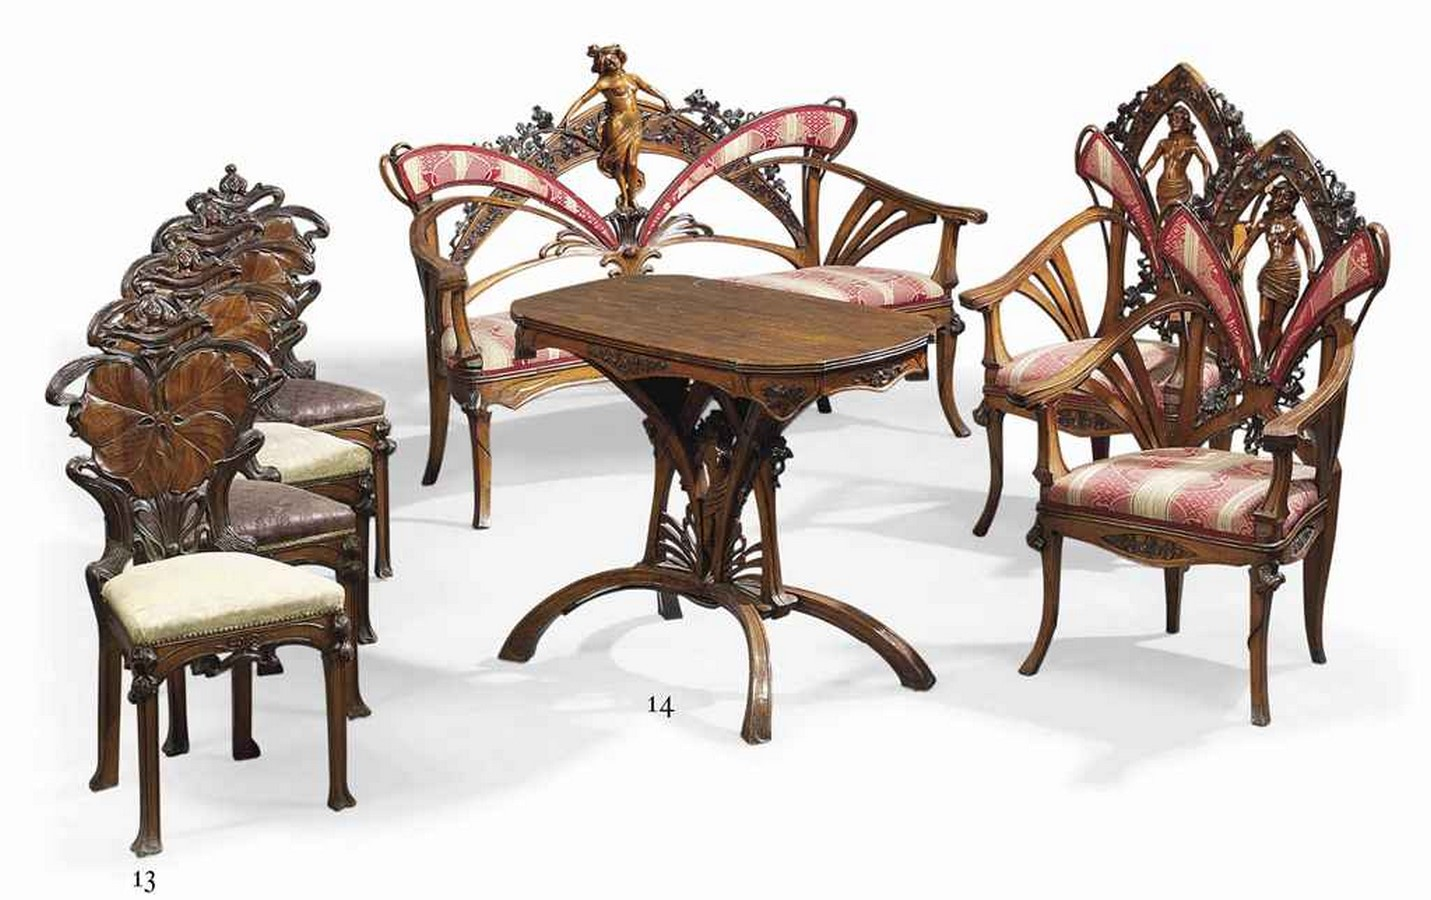 The psychology behind aesthetic value of antique furniture - Sheet6